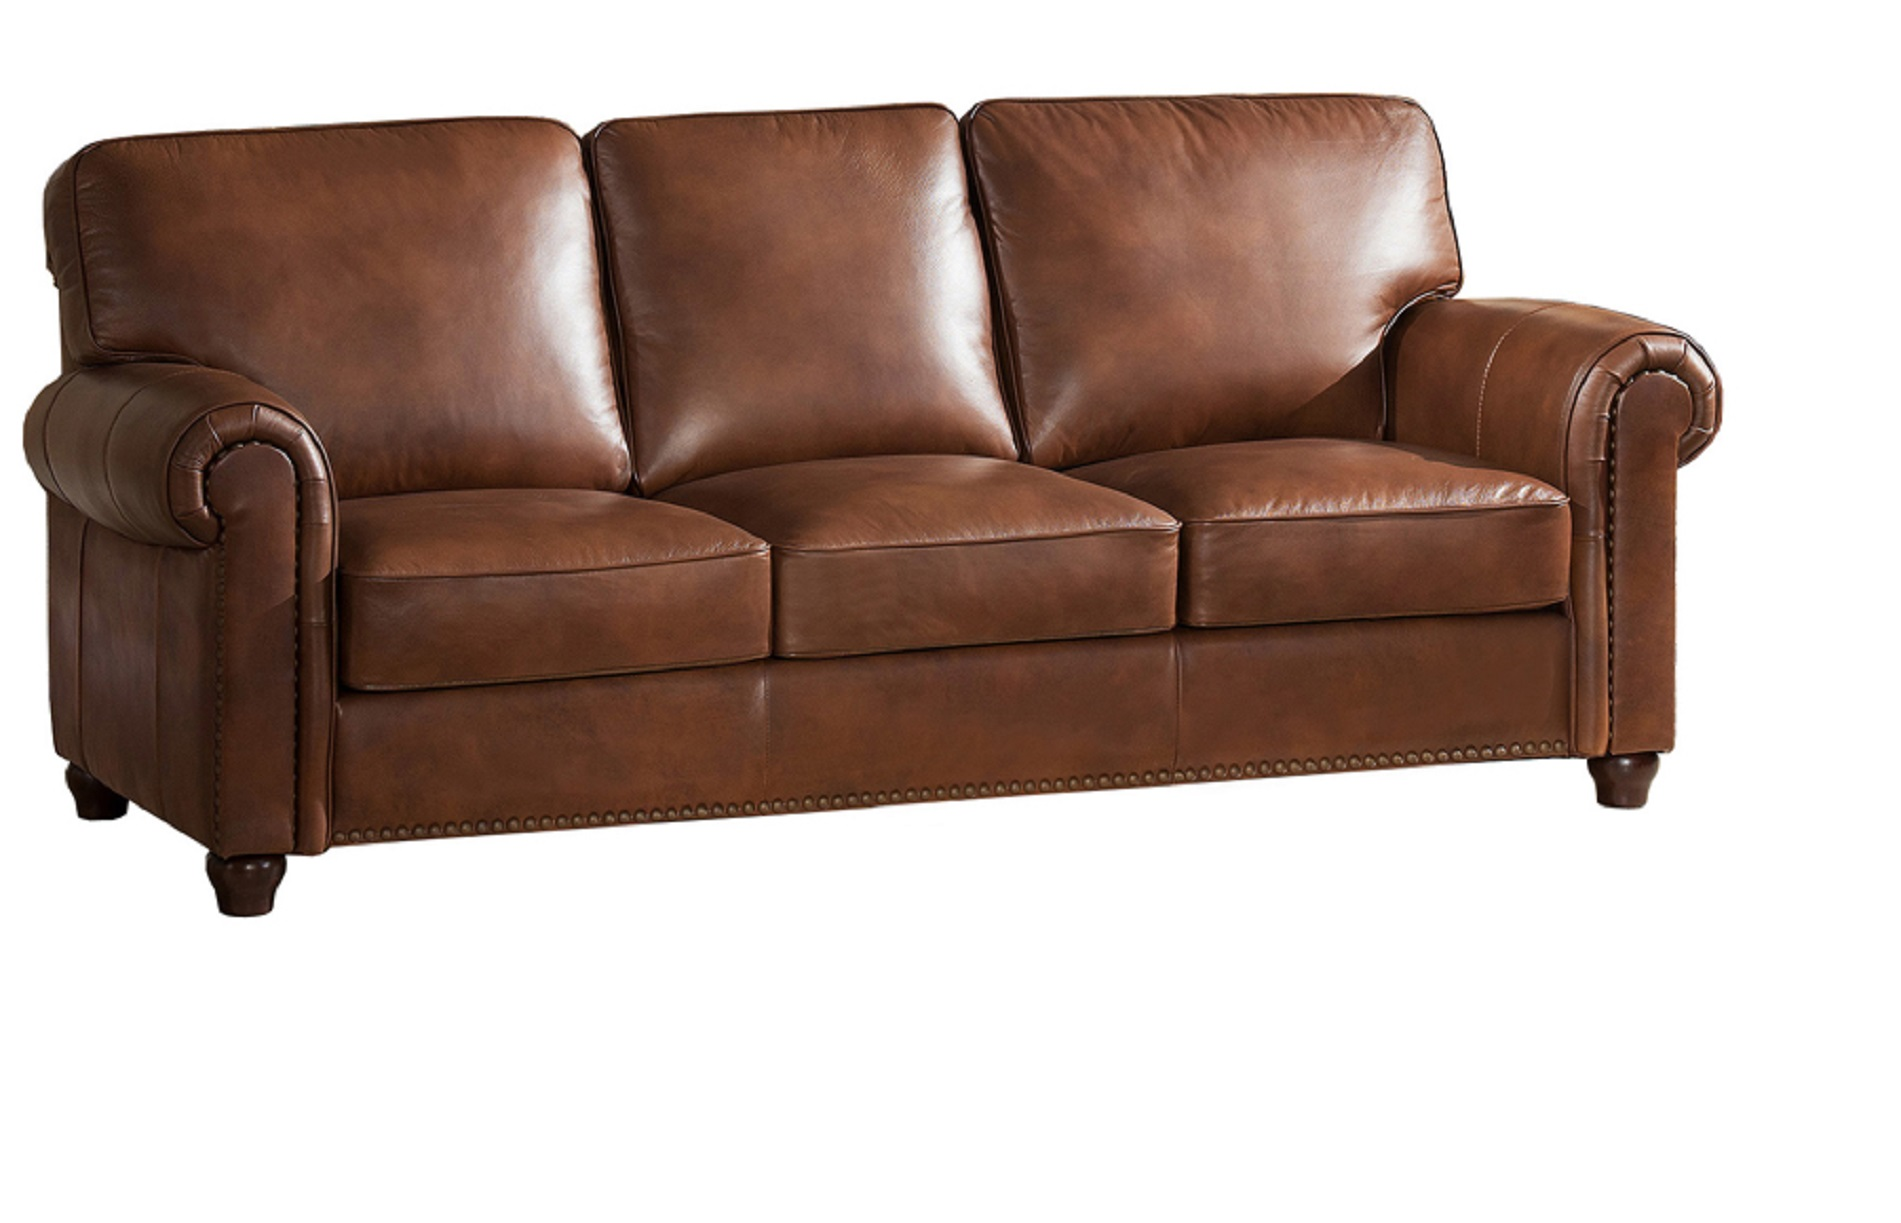 Jane Furniture Barbara Top Grain Brown Leather Sofa Usa